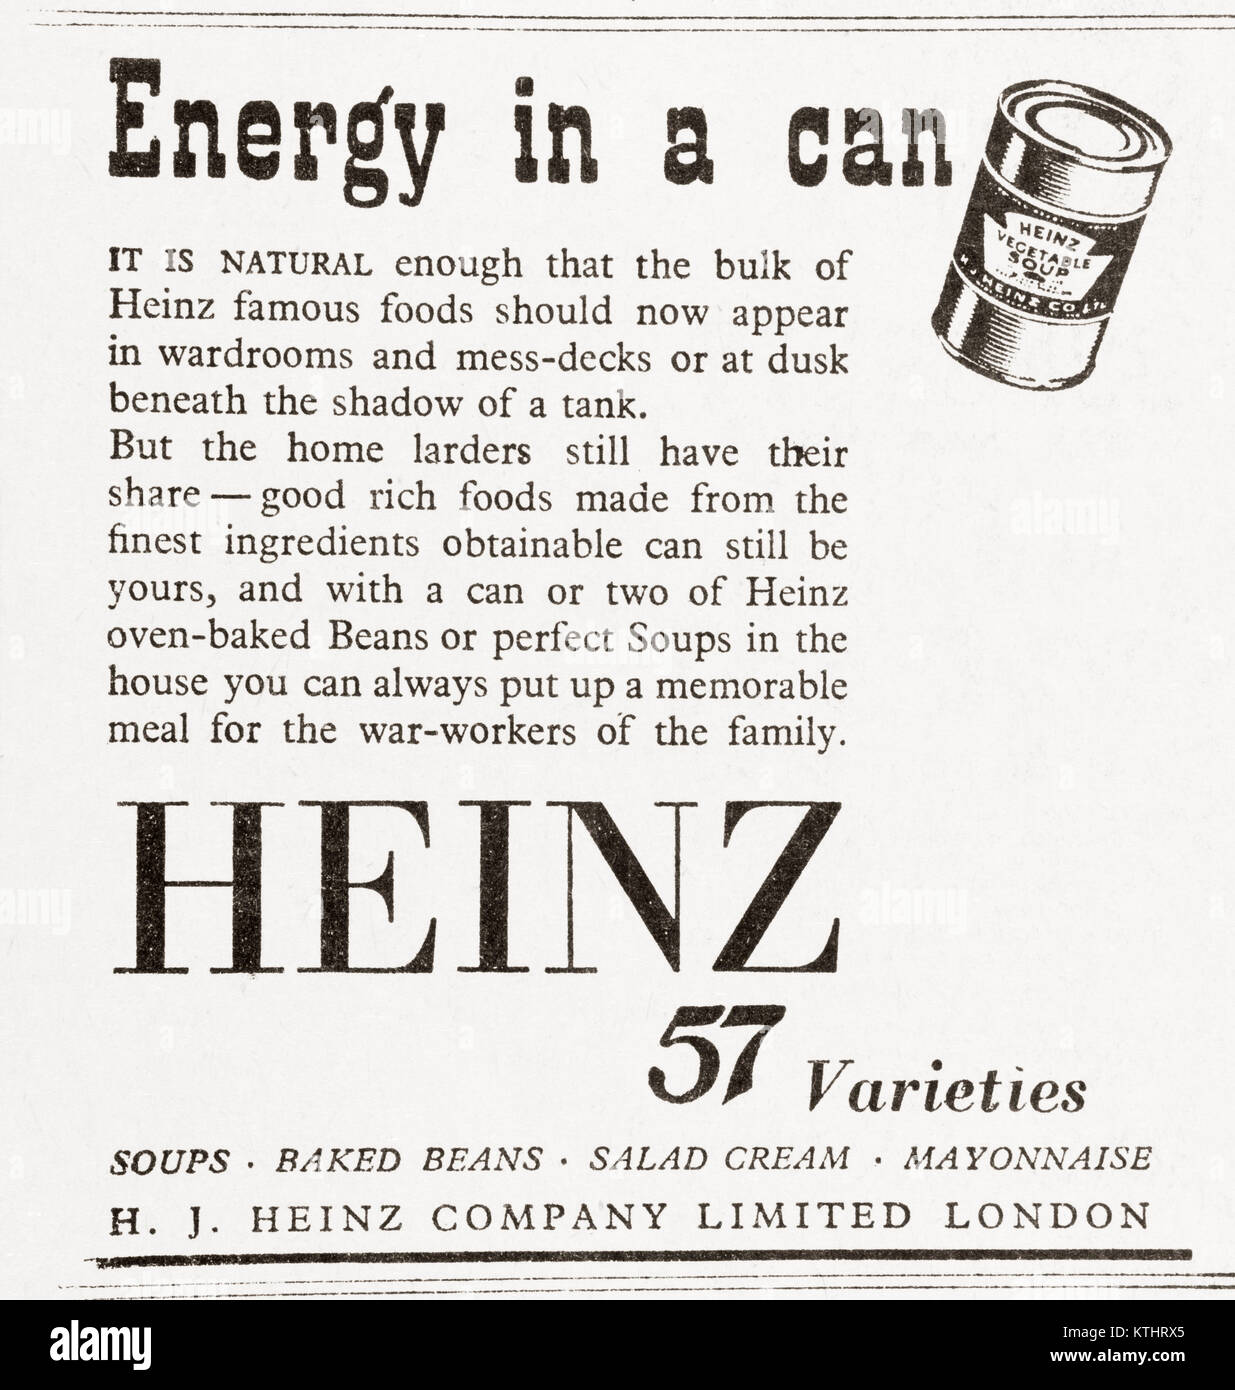 1943 advertisement for Heinz 57 Varieties canned food.  From The Daily Telegraph, May 18th, 1943. - Stock Image